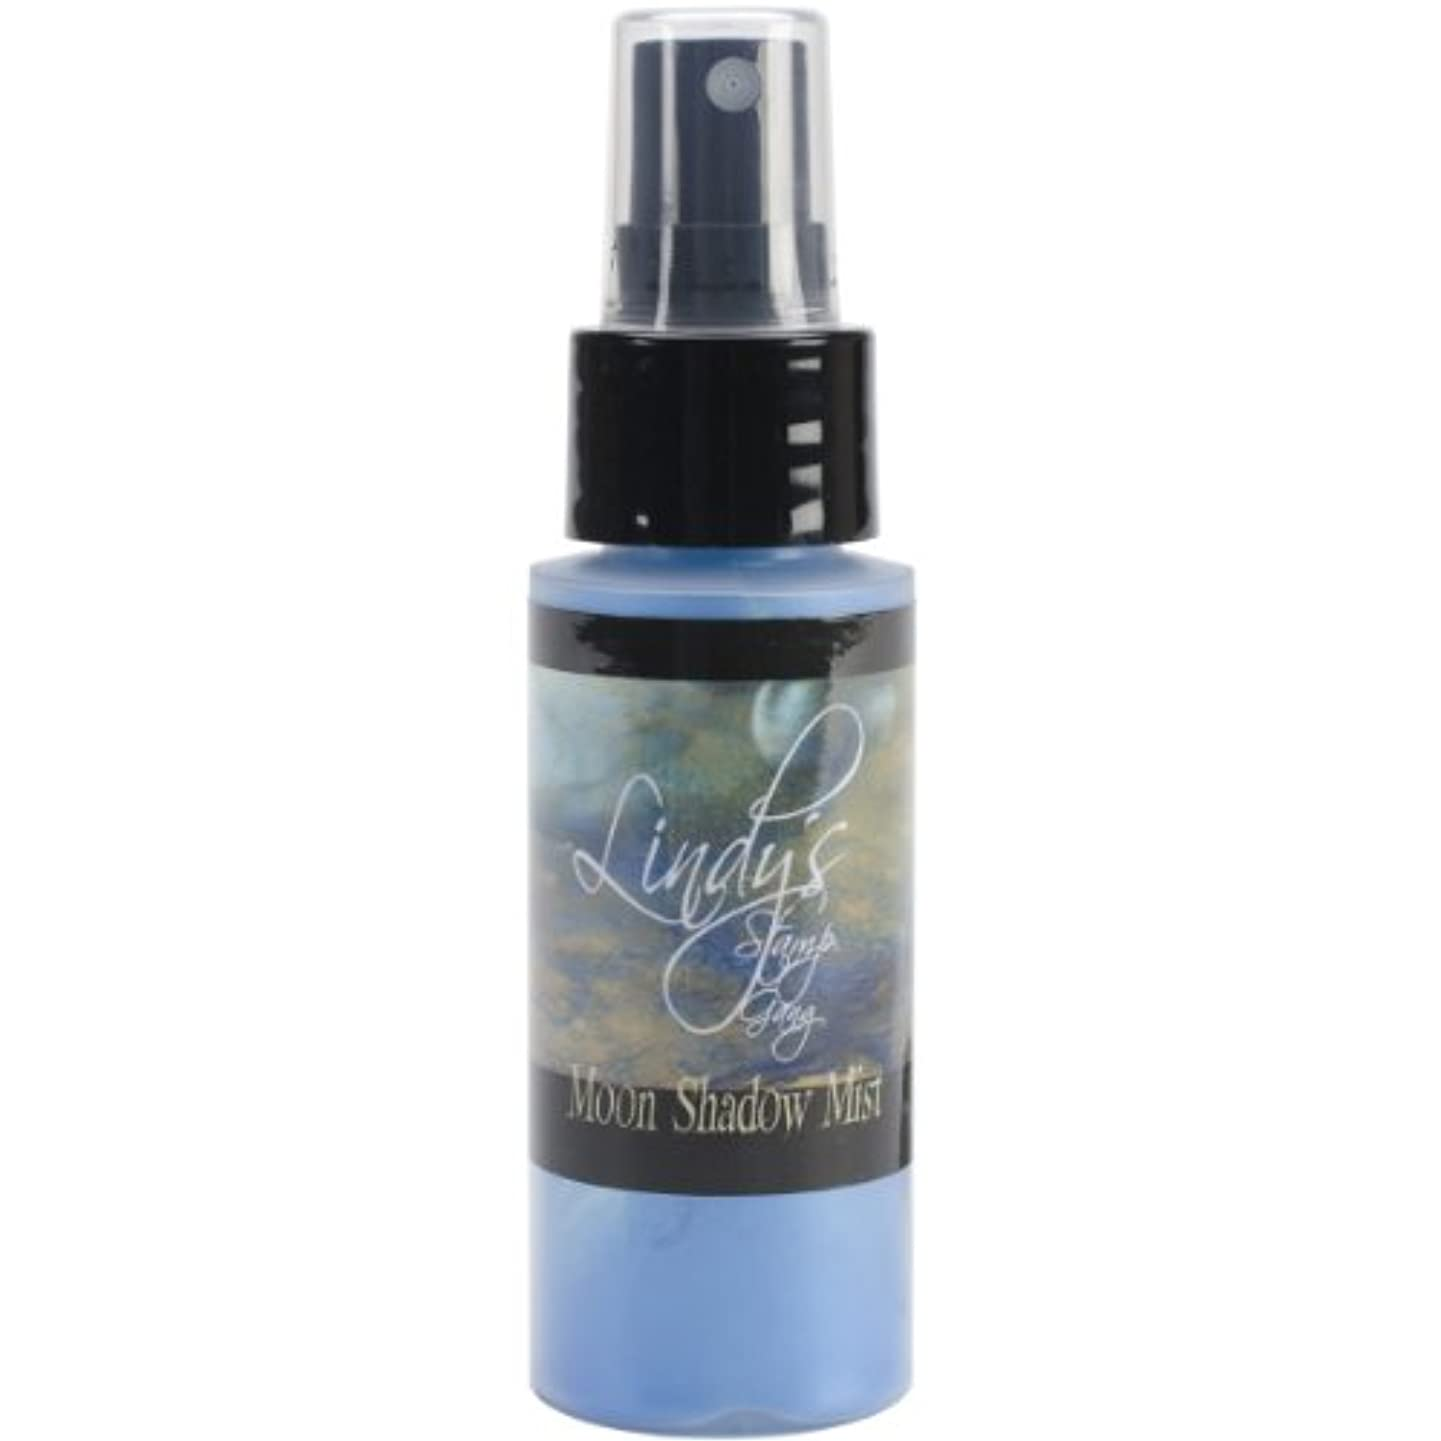 Lindy's Stamp Gang Moon Shadow Mist, 2-Ounce, Buccaneer Bay Blue